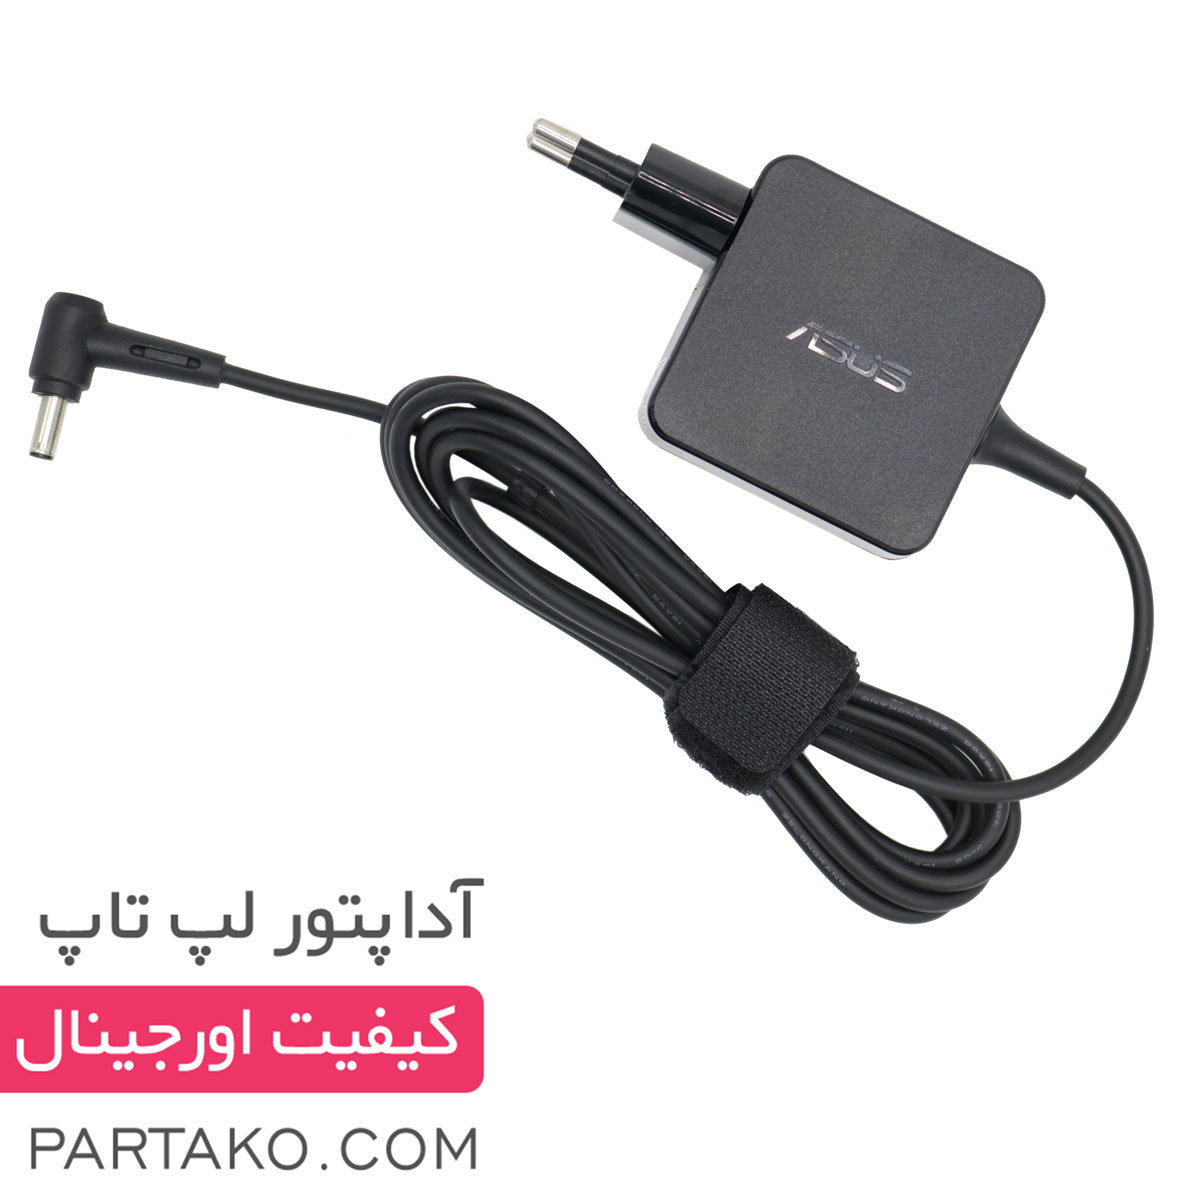 image شارژر لپ تاپ ایسوس 19ولت 1.75آمپر EXA1206UH - ADAPTER CHARGER ASUS